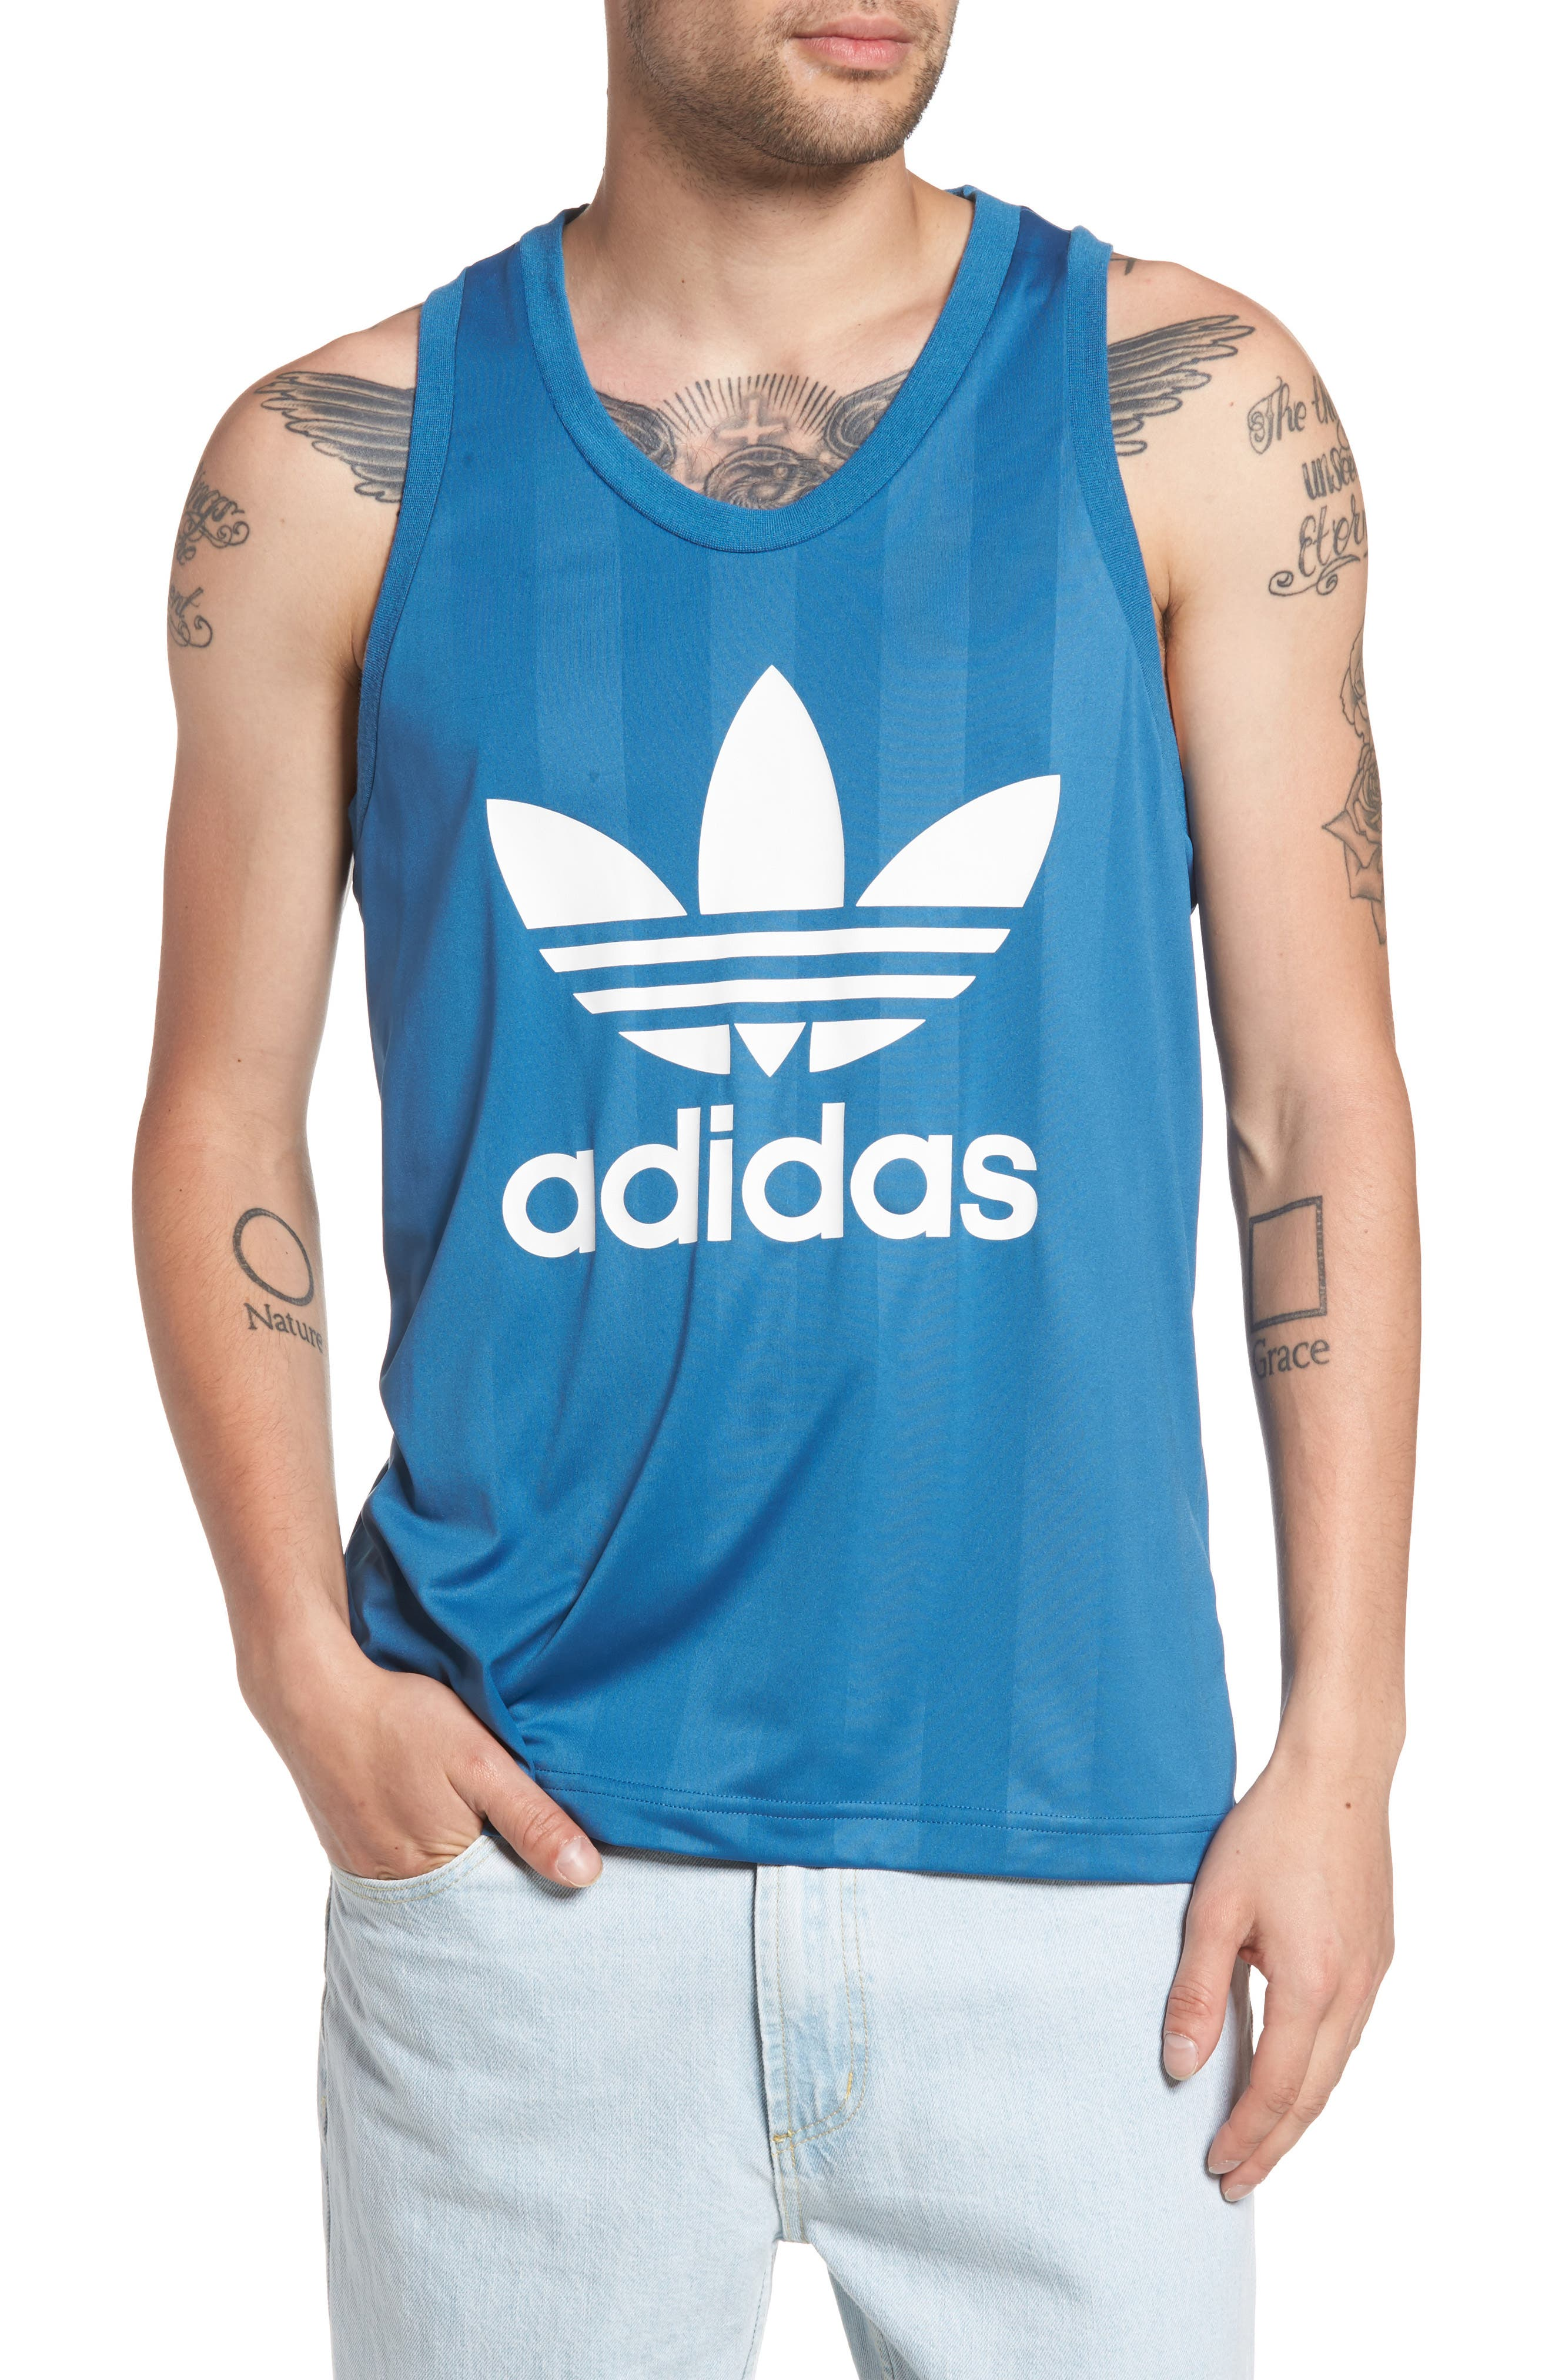 adidas Originals Trefoil Graphic Tank